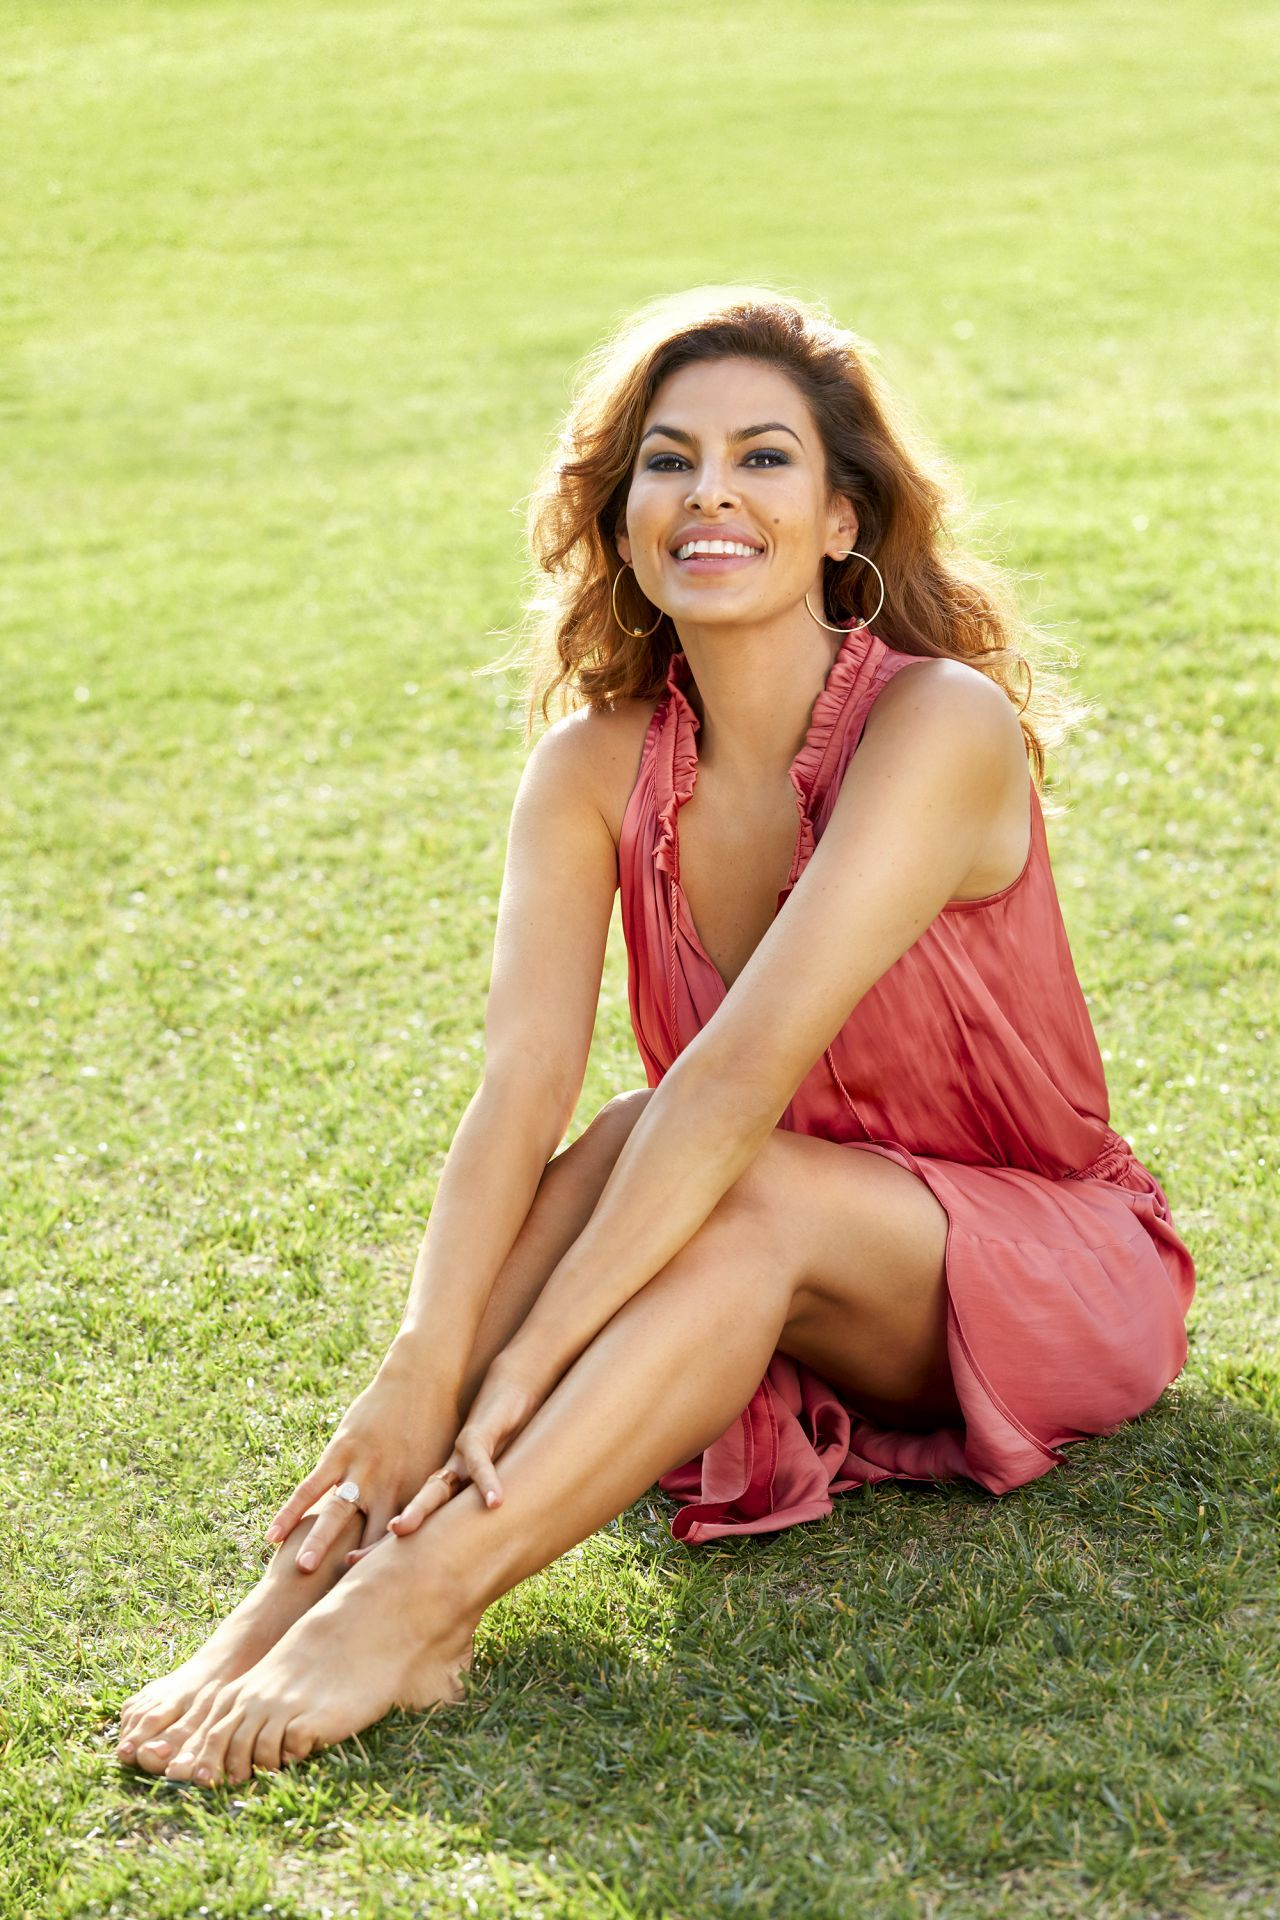 nude images of eva mendes